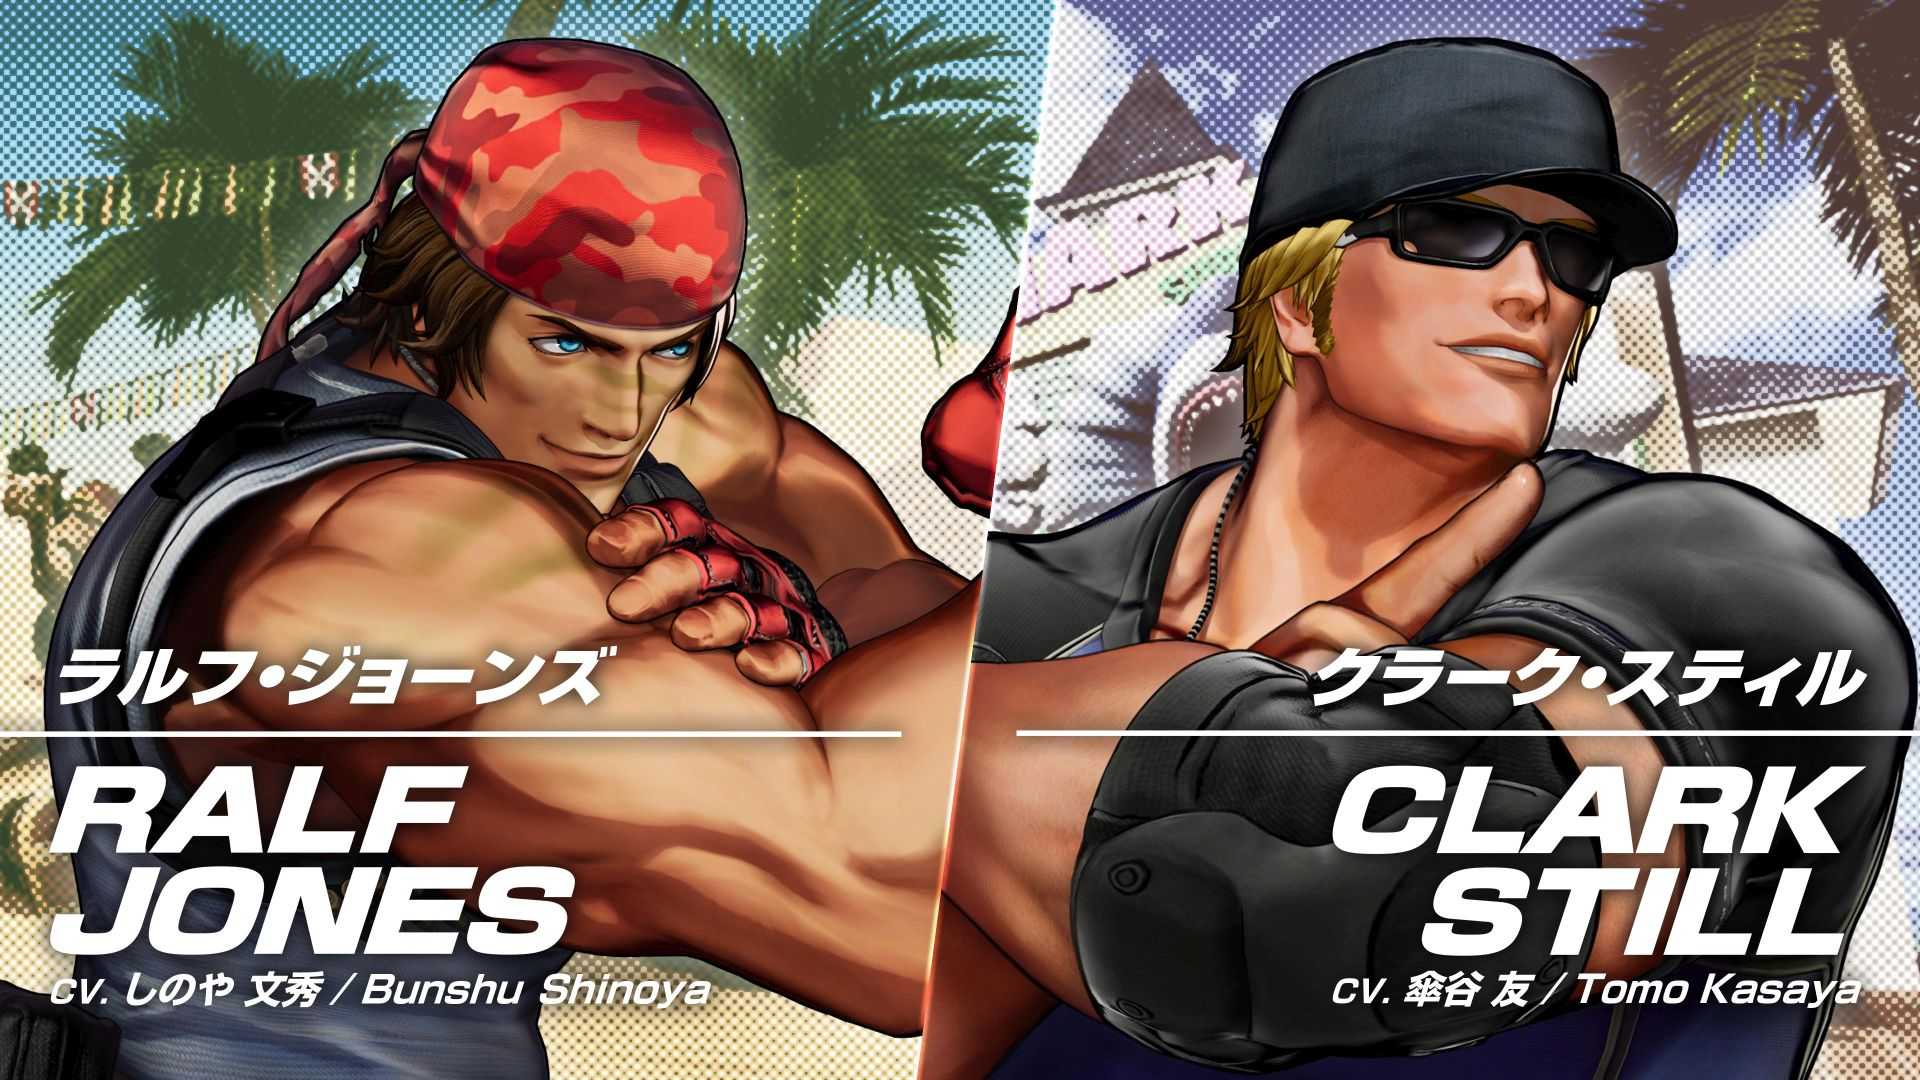 The King of Fighters 15 - Ralf Jones and Clark Still